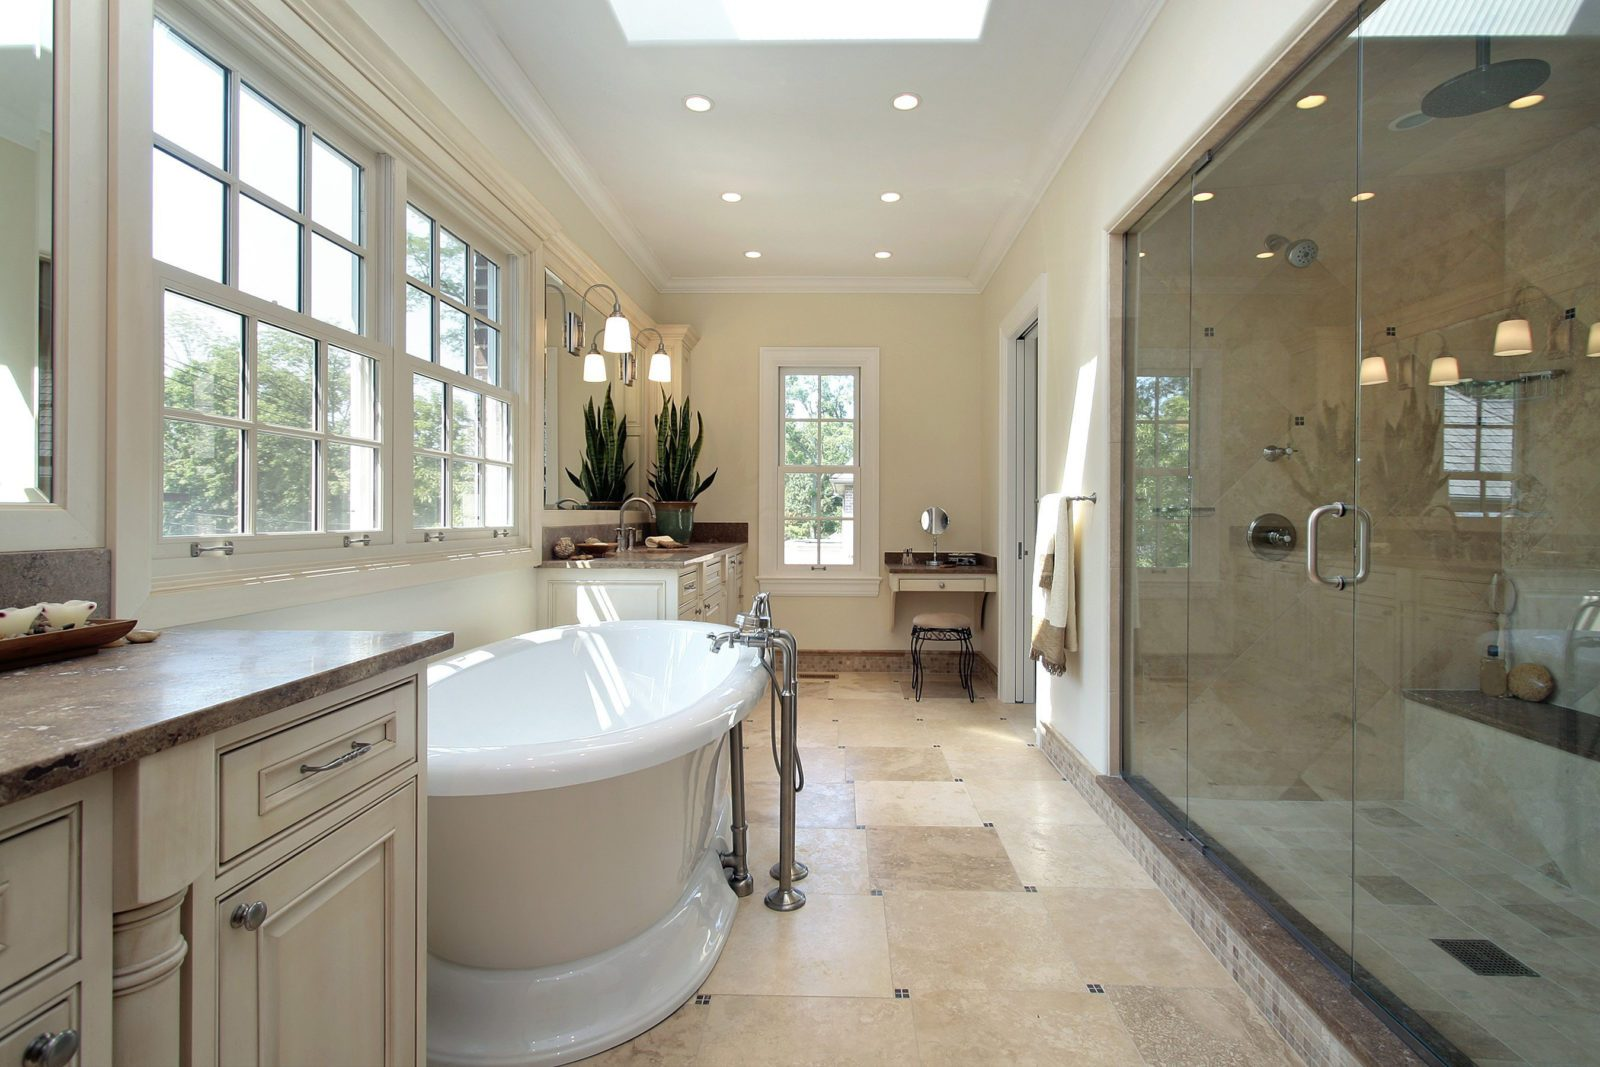 Remodel Bathroom bathroom remodeling bathroom remodeling 800 213 5288 Or 925 718 1054